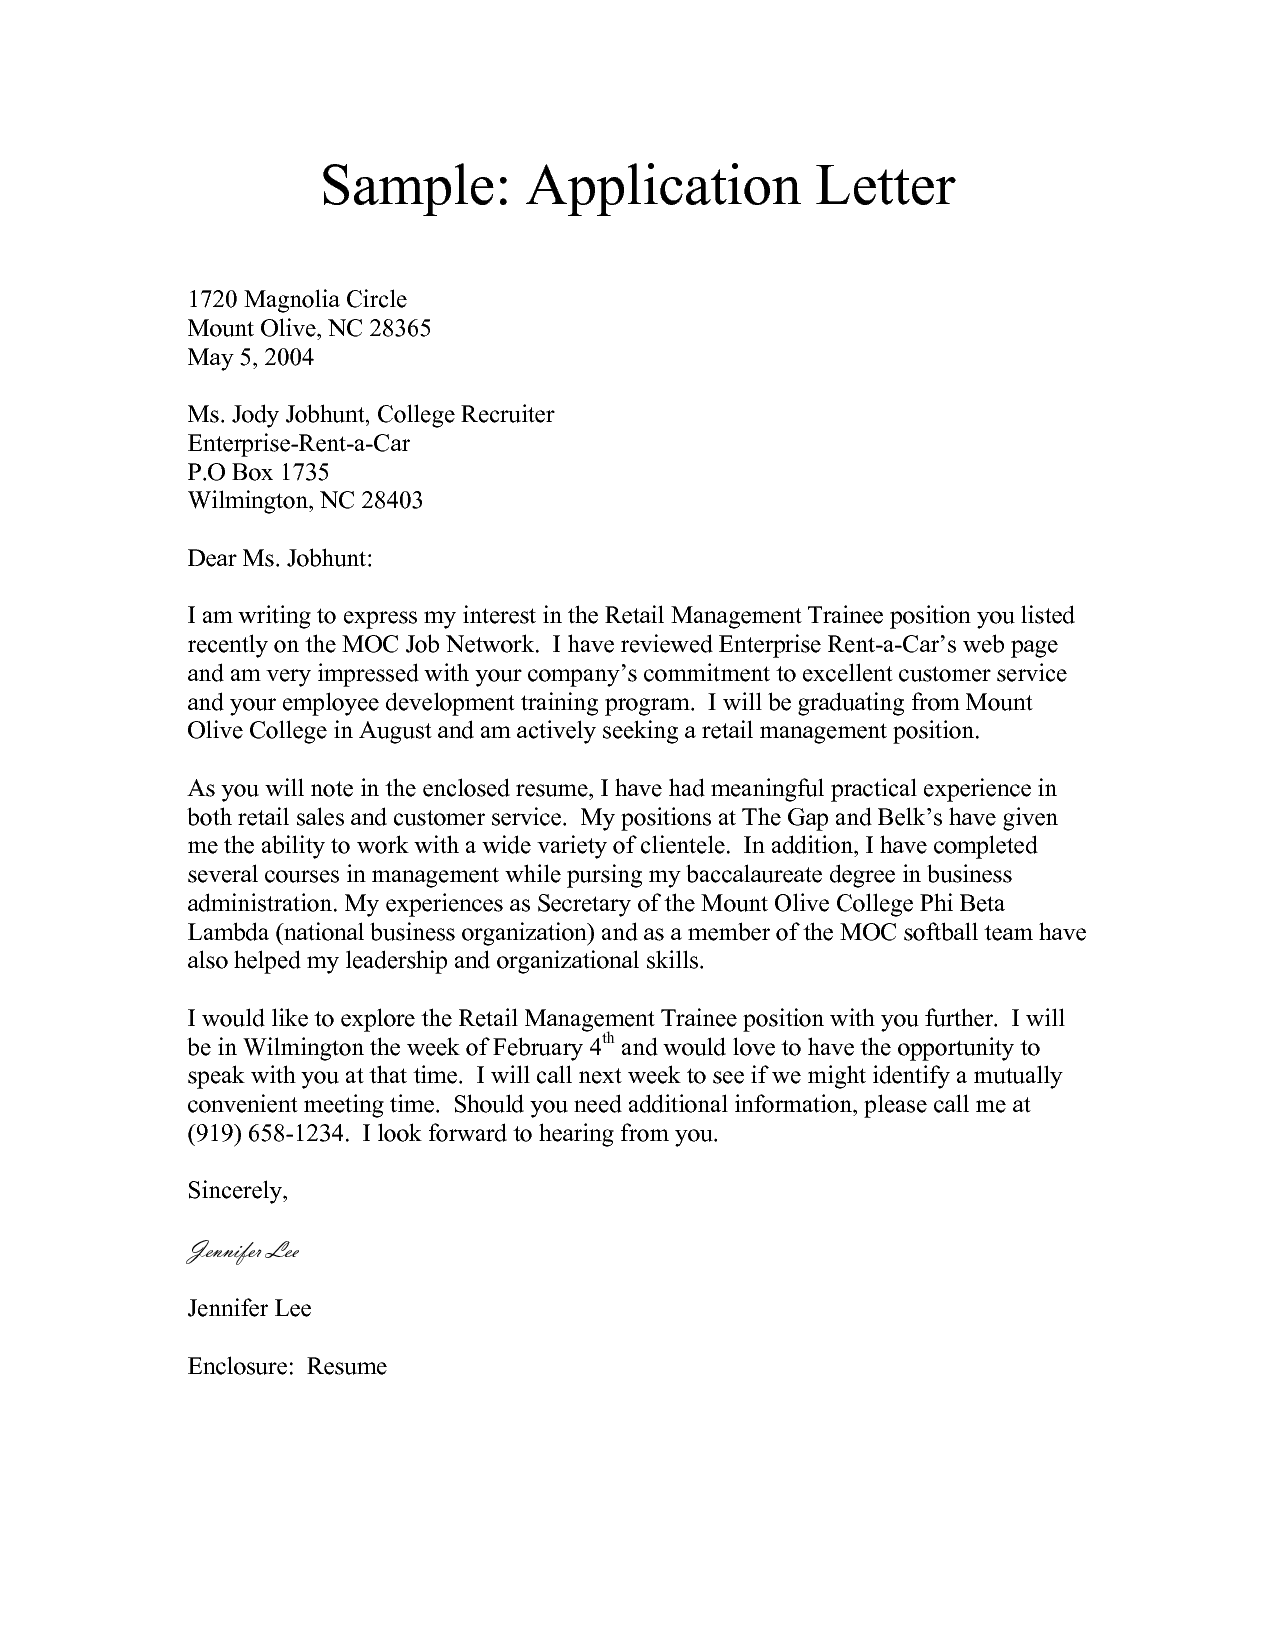 Application Letter Use These Samples For Fresh Sample Format Download  Documents Pdf Word  Cover Letter For Management Position